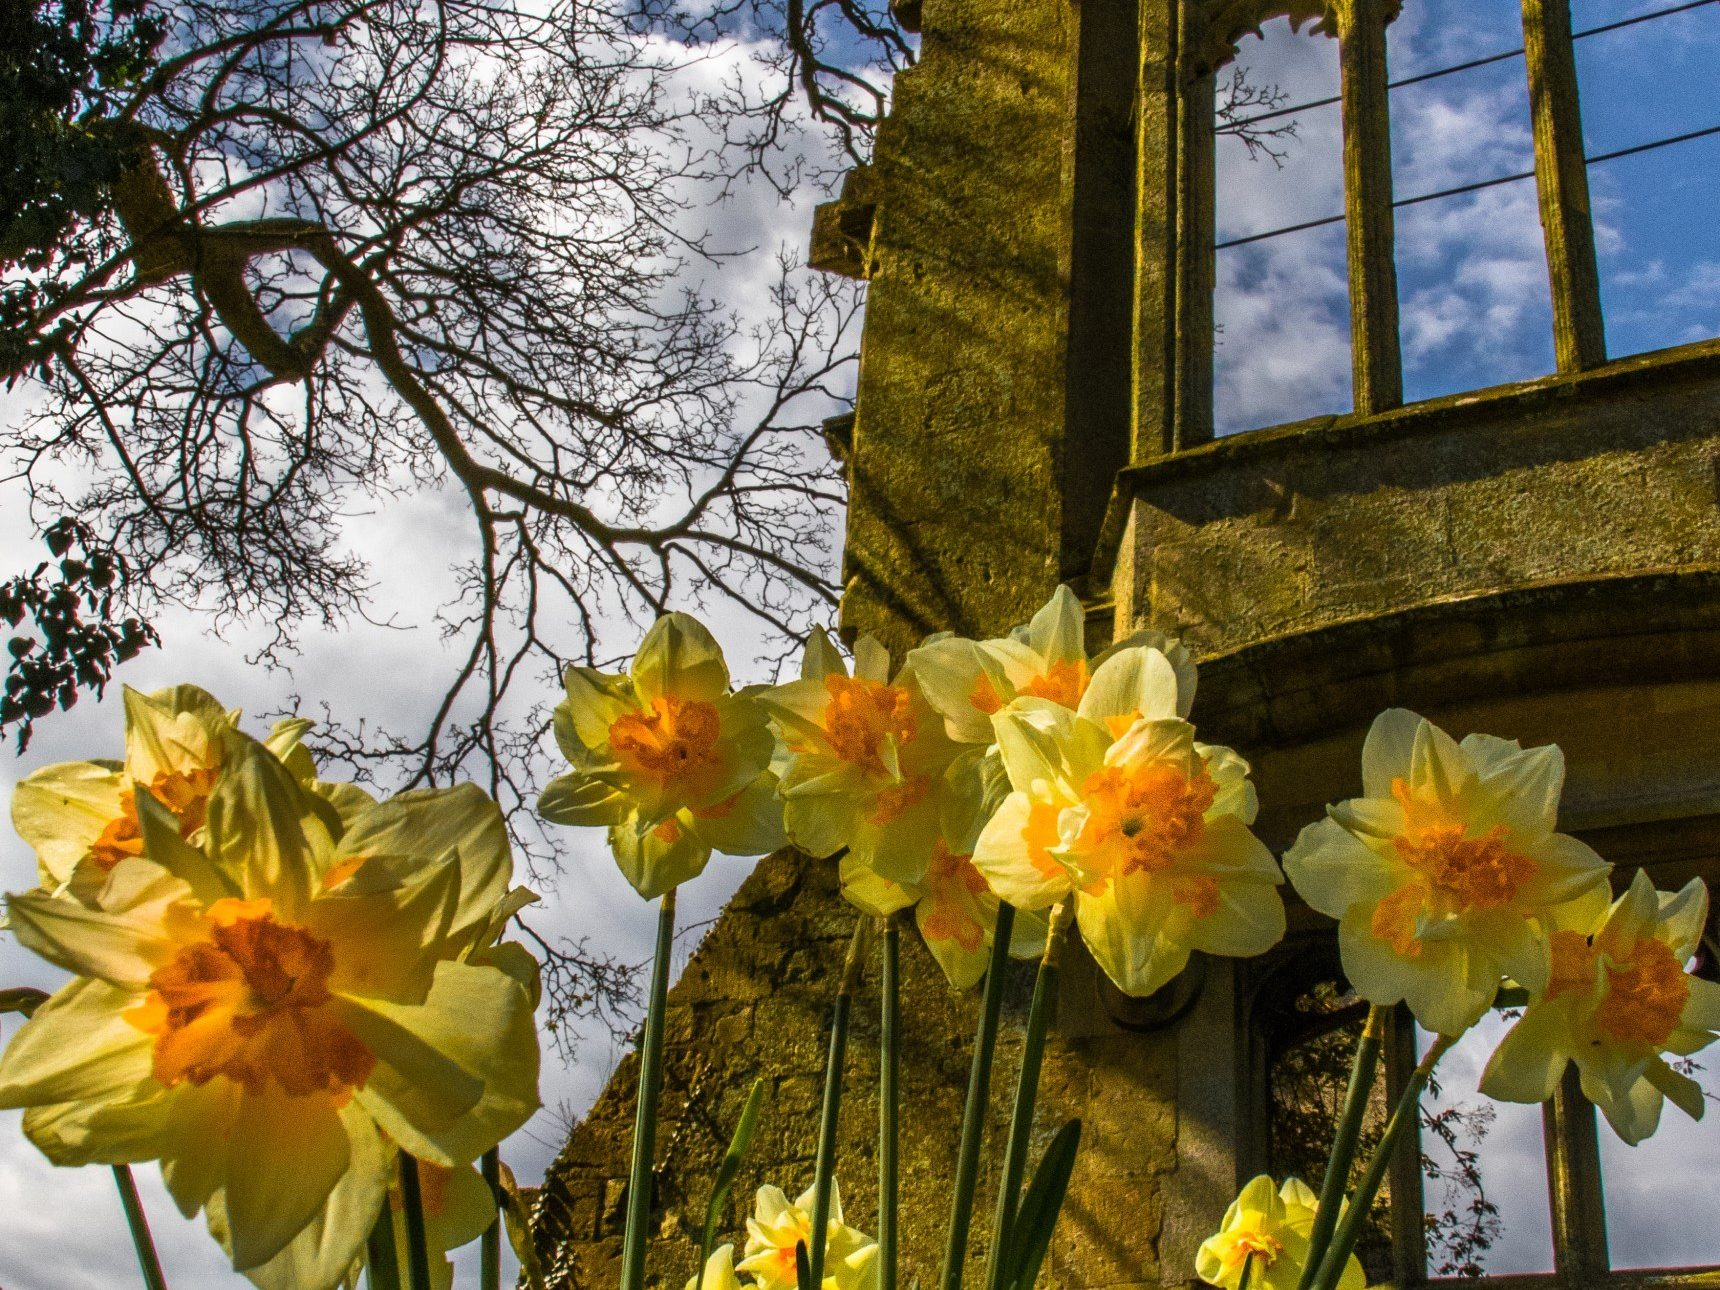 daffodils in front of ruins